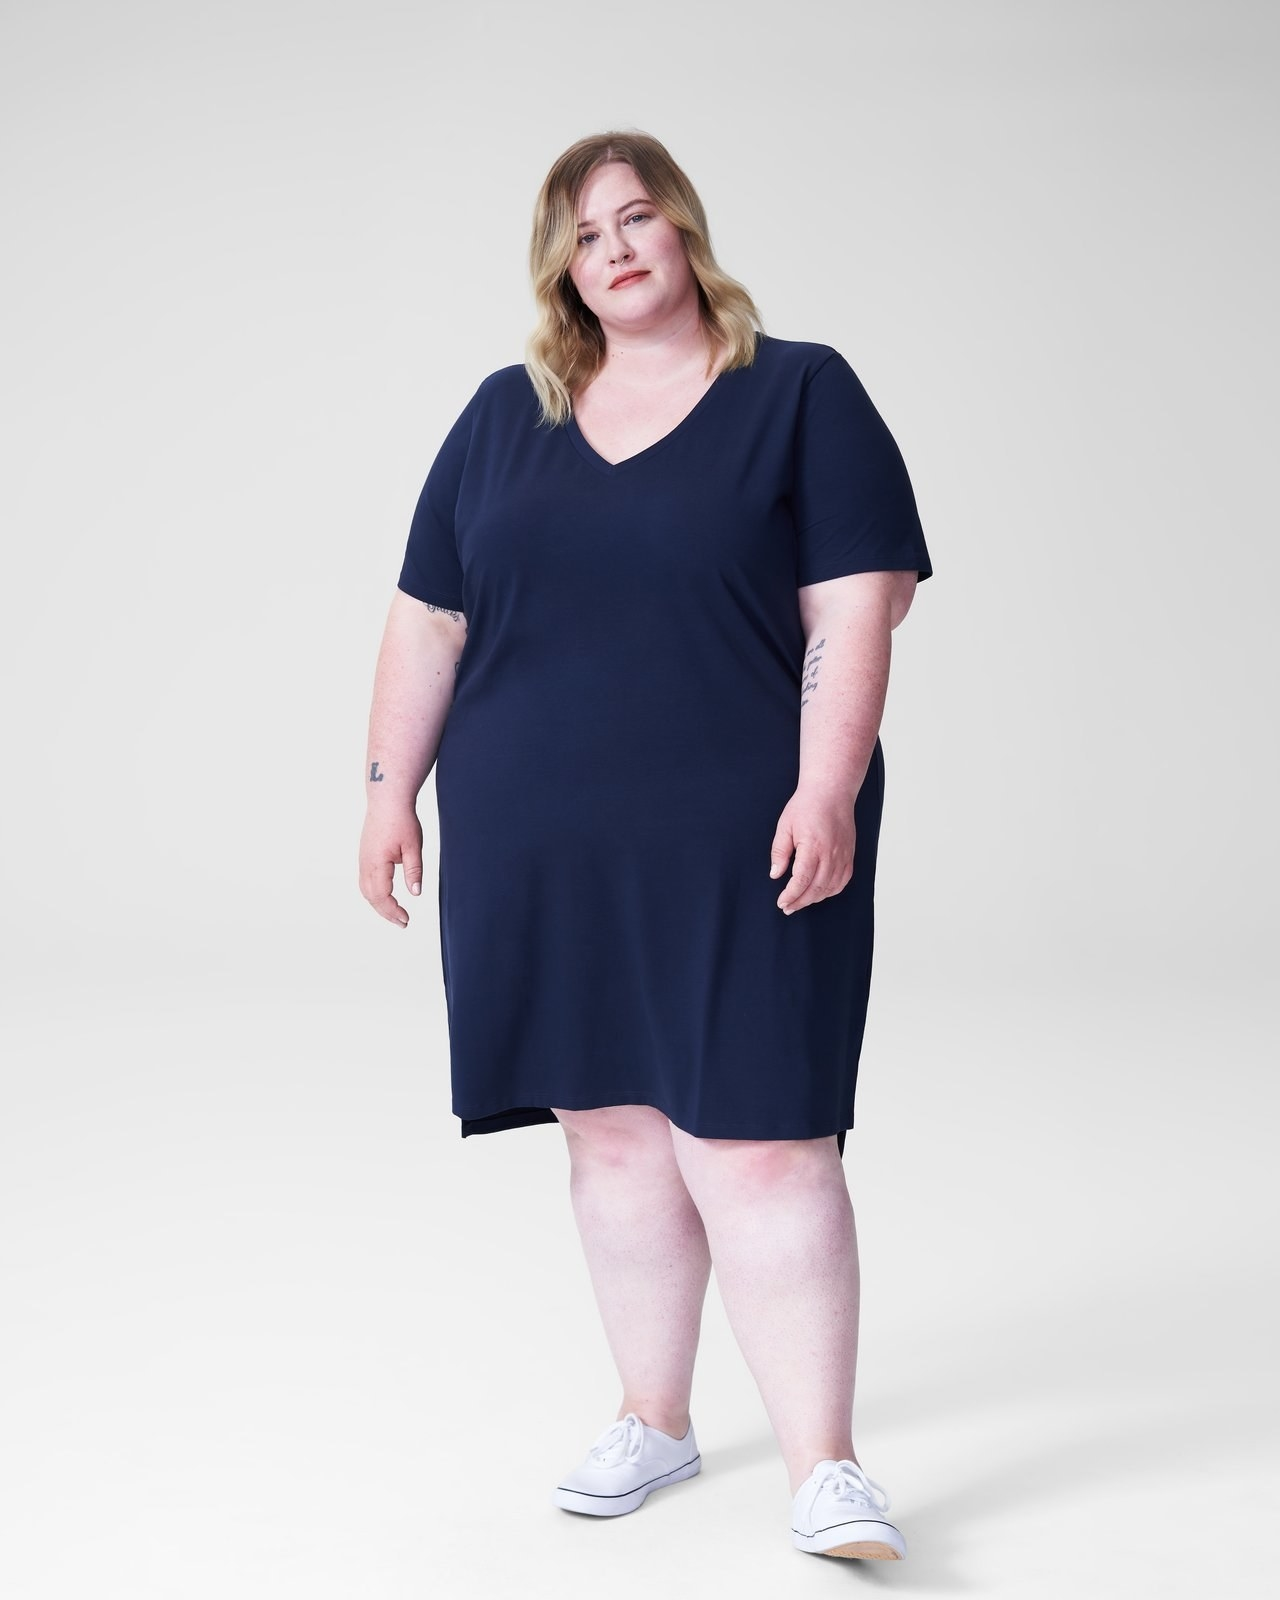 Model wearing the short-sleeved t-shirt dress with a v-neck in navy